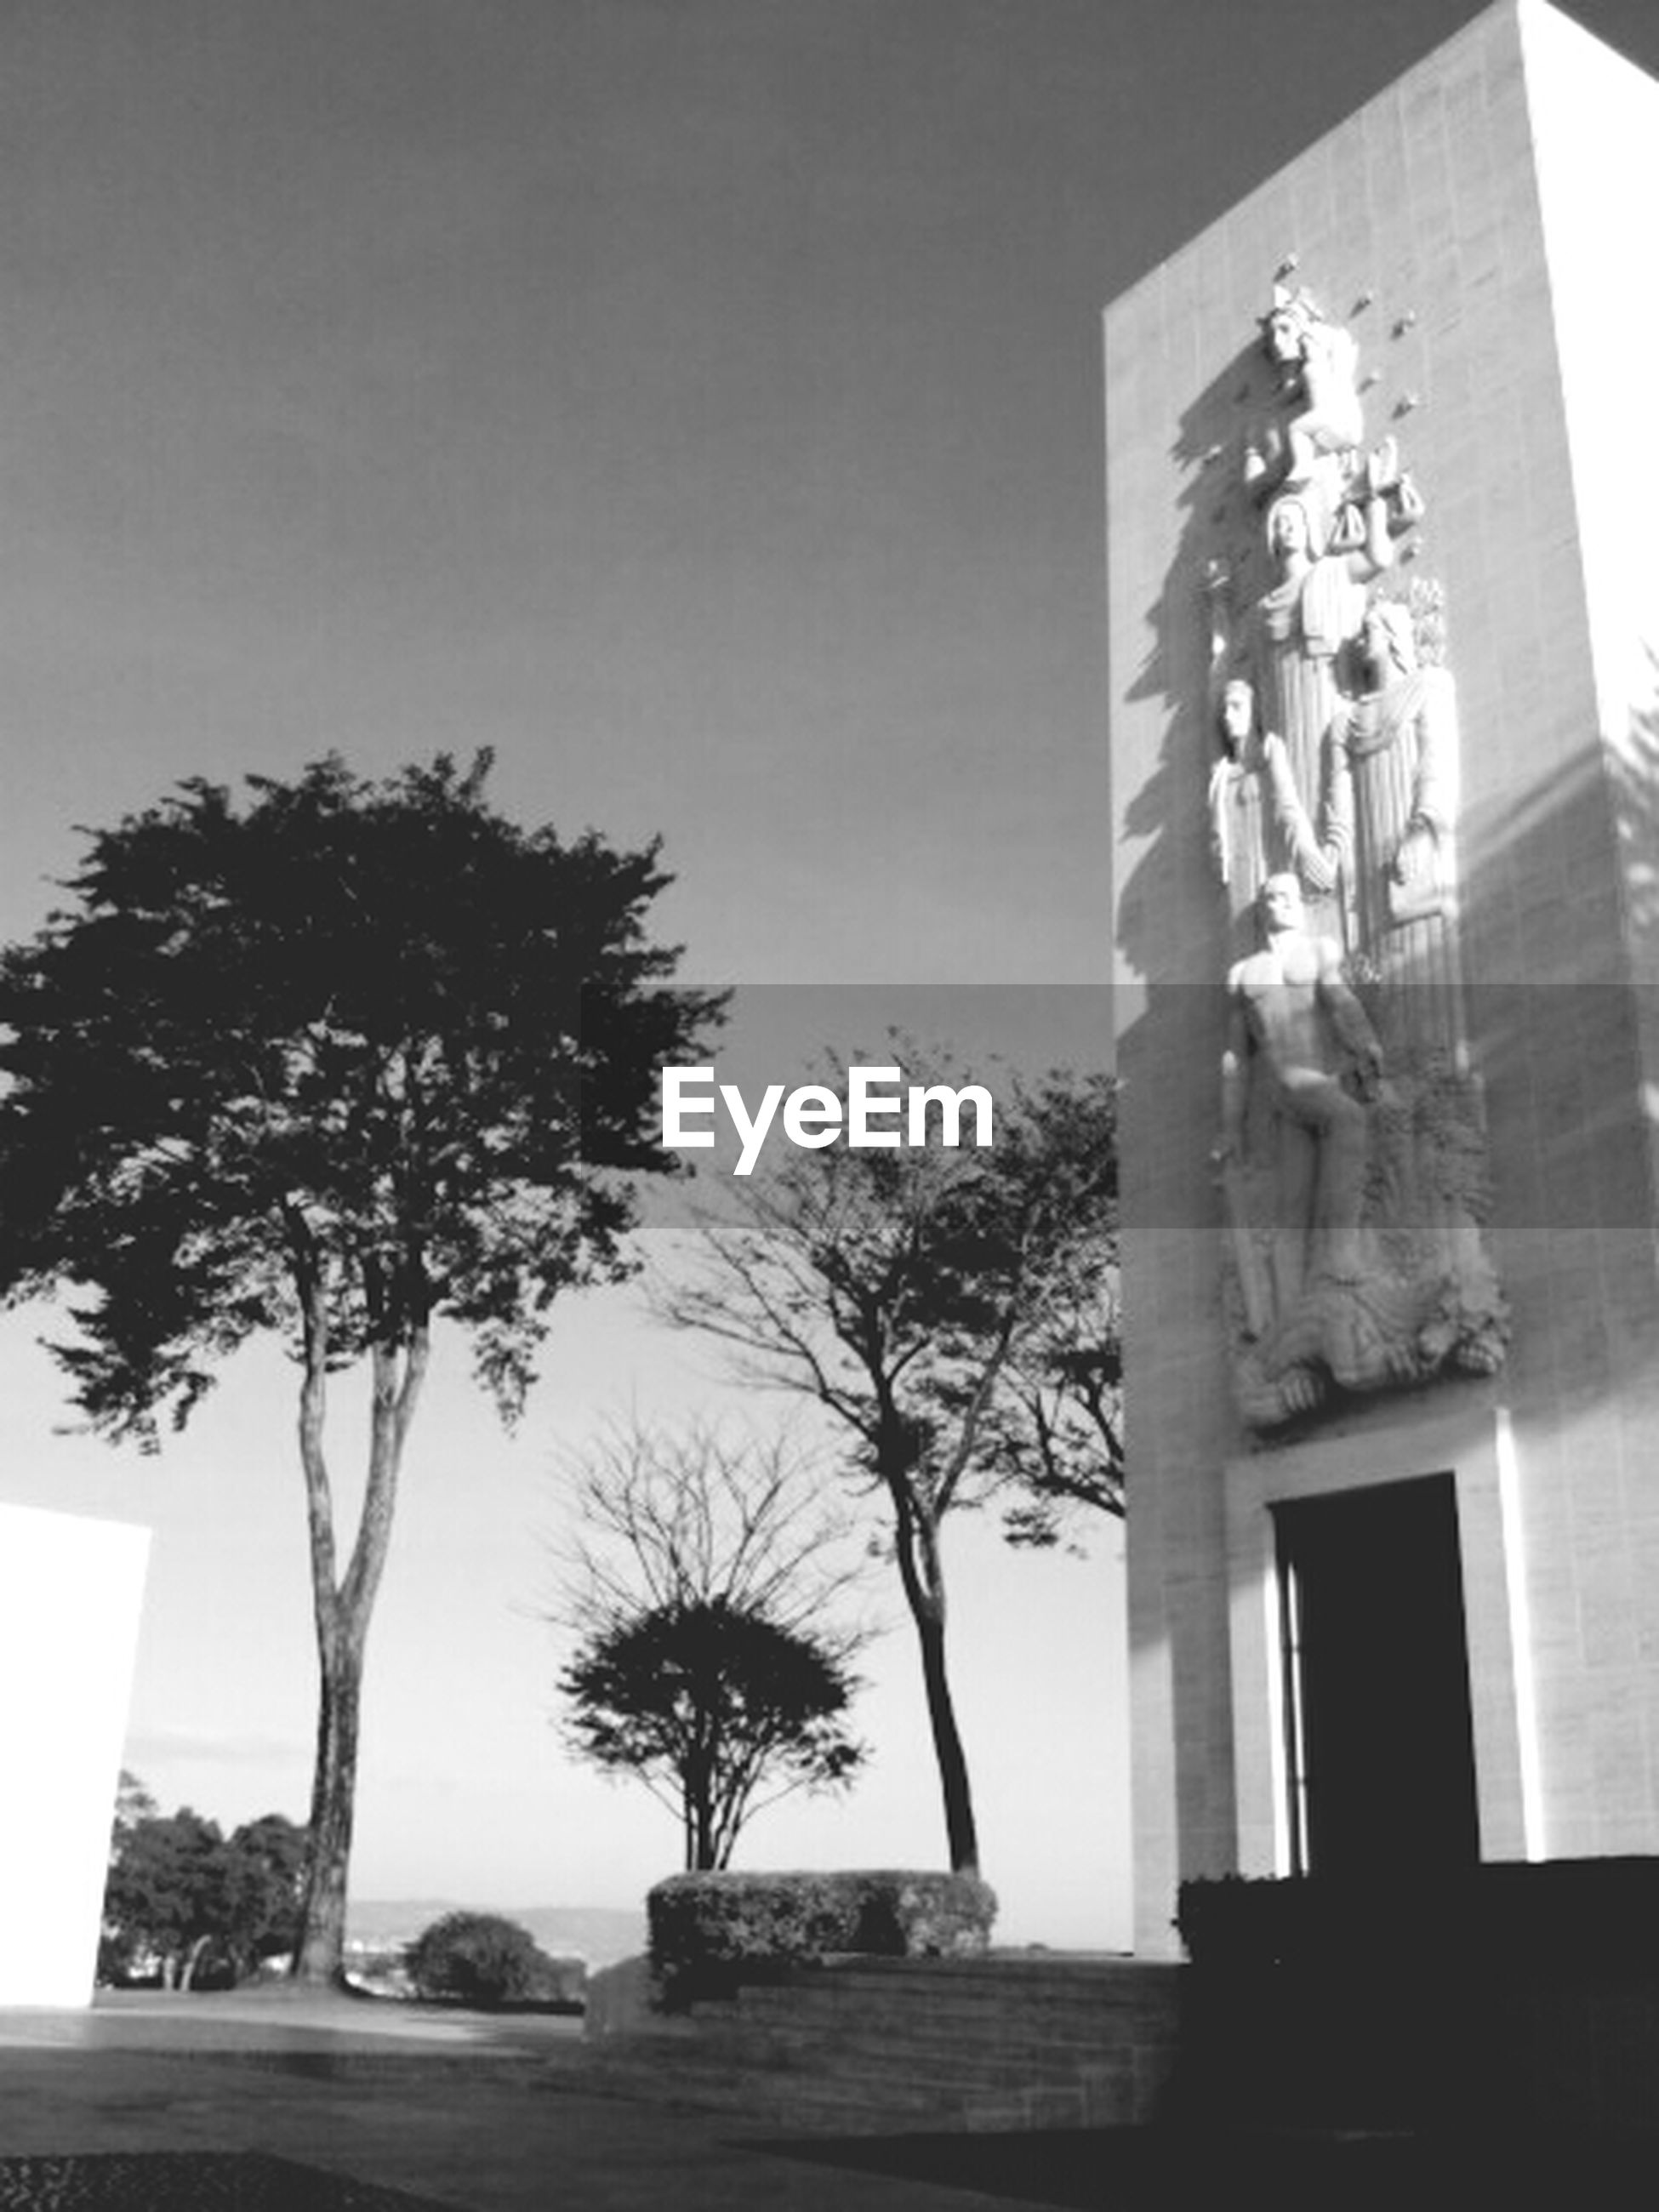 tree, architecture, built structure, building exterior, low angle view, clear sky, palm tree, sunlight, human representation, growth, day, sky, house, shadow, tree trunk, art and craft, no people, statue, window, sculpture